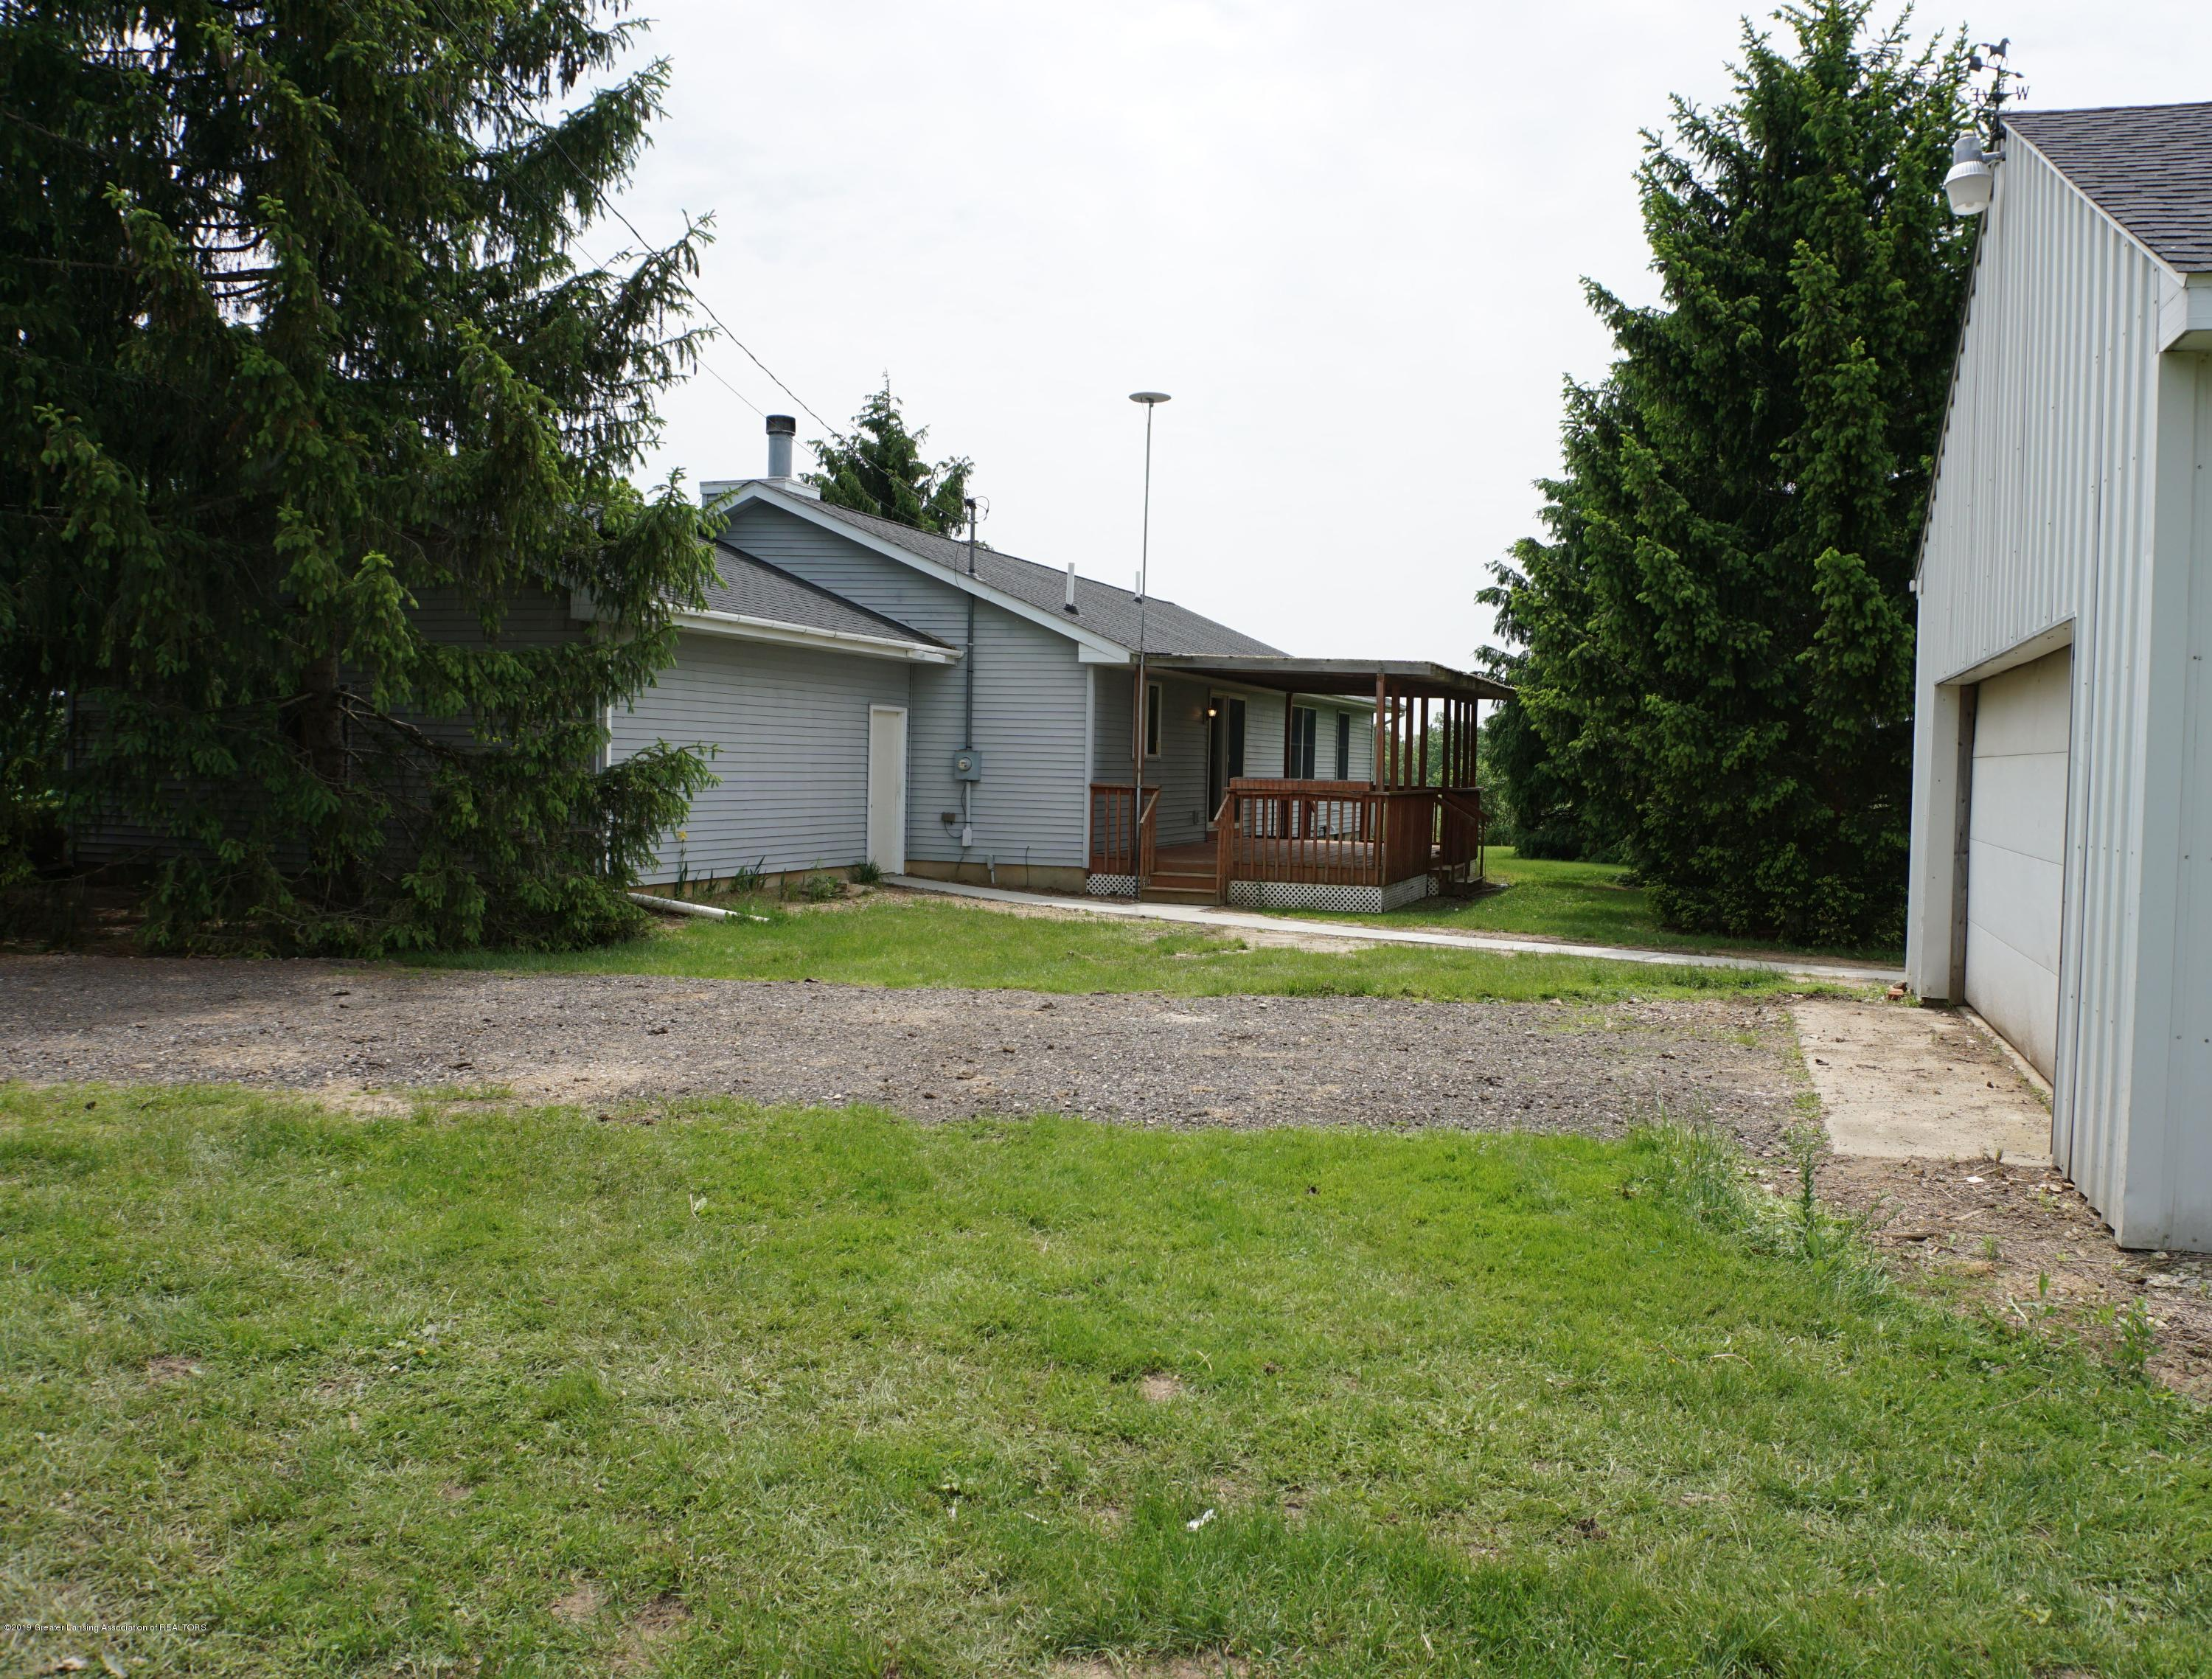 5780 Leland Rd - New walks - 10